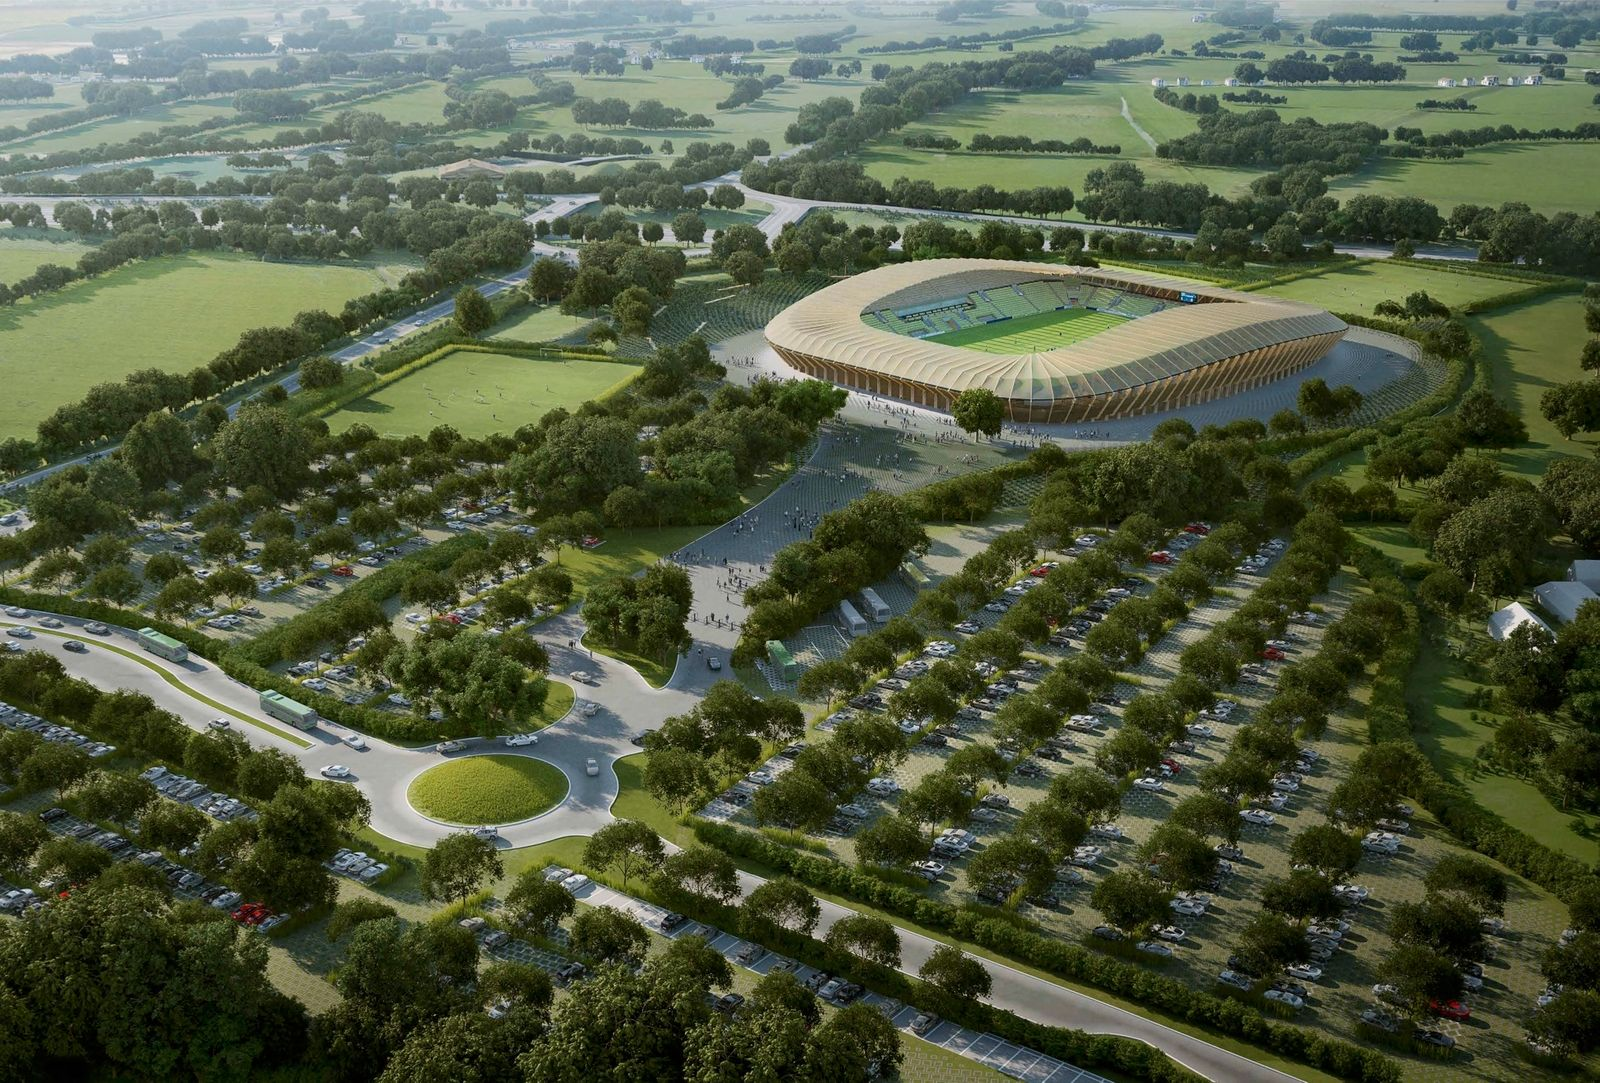 Forest Green Rovers / Stadion / Entwurf / Eco Park